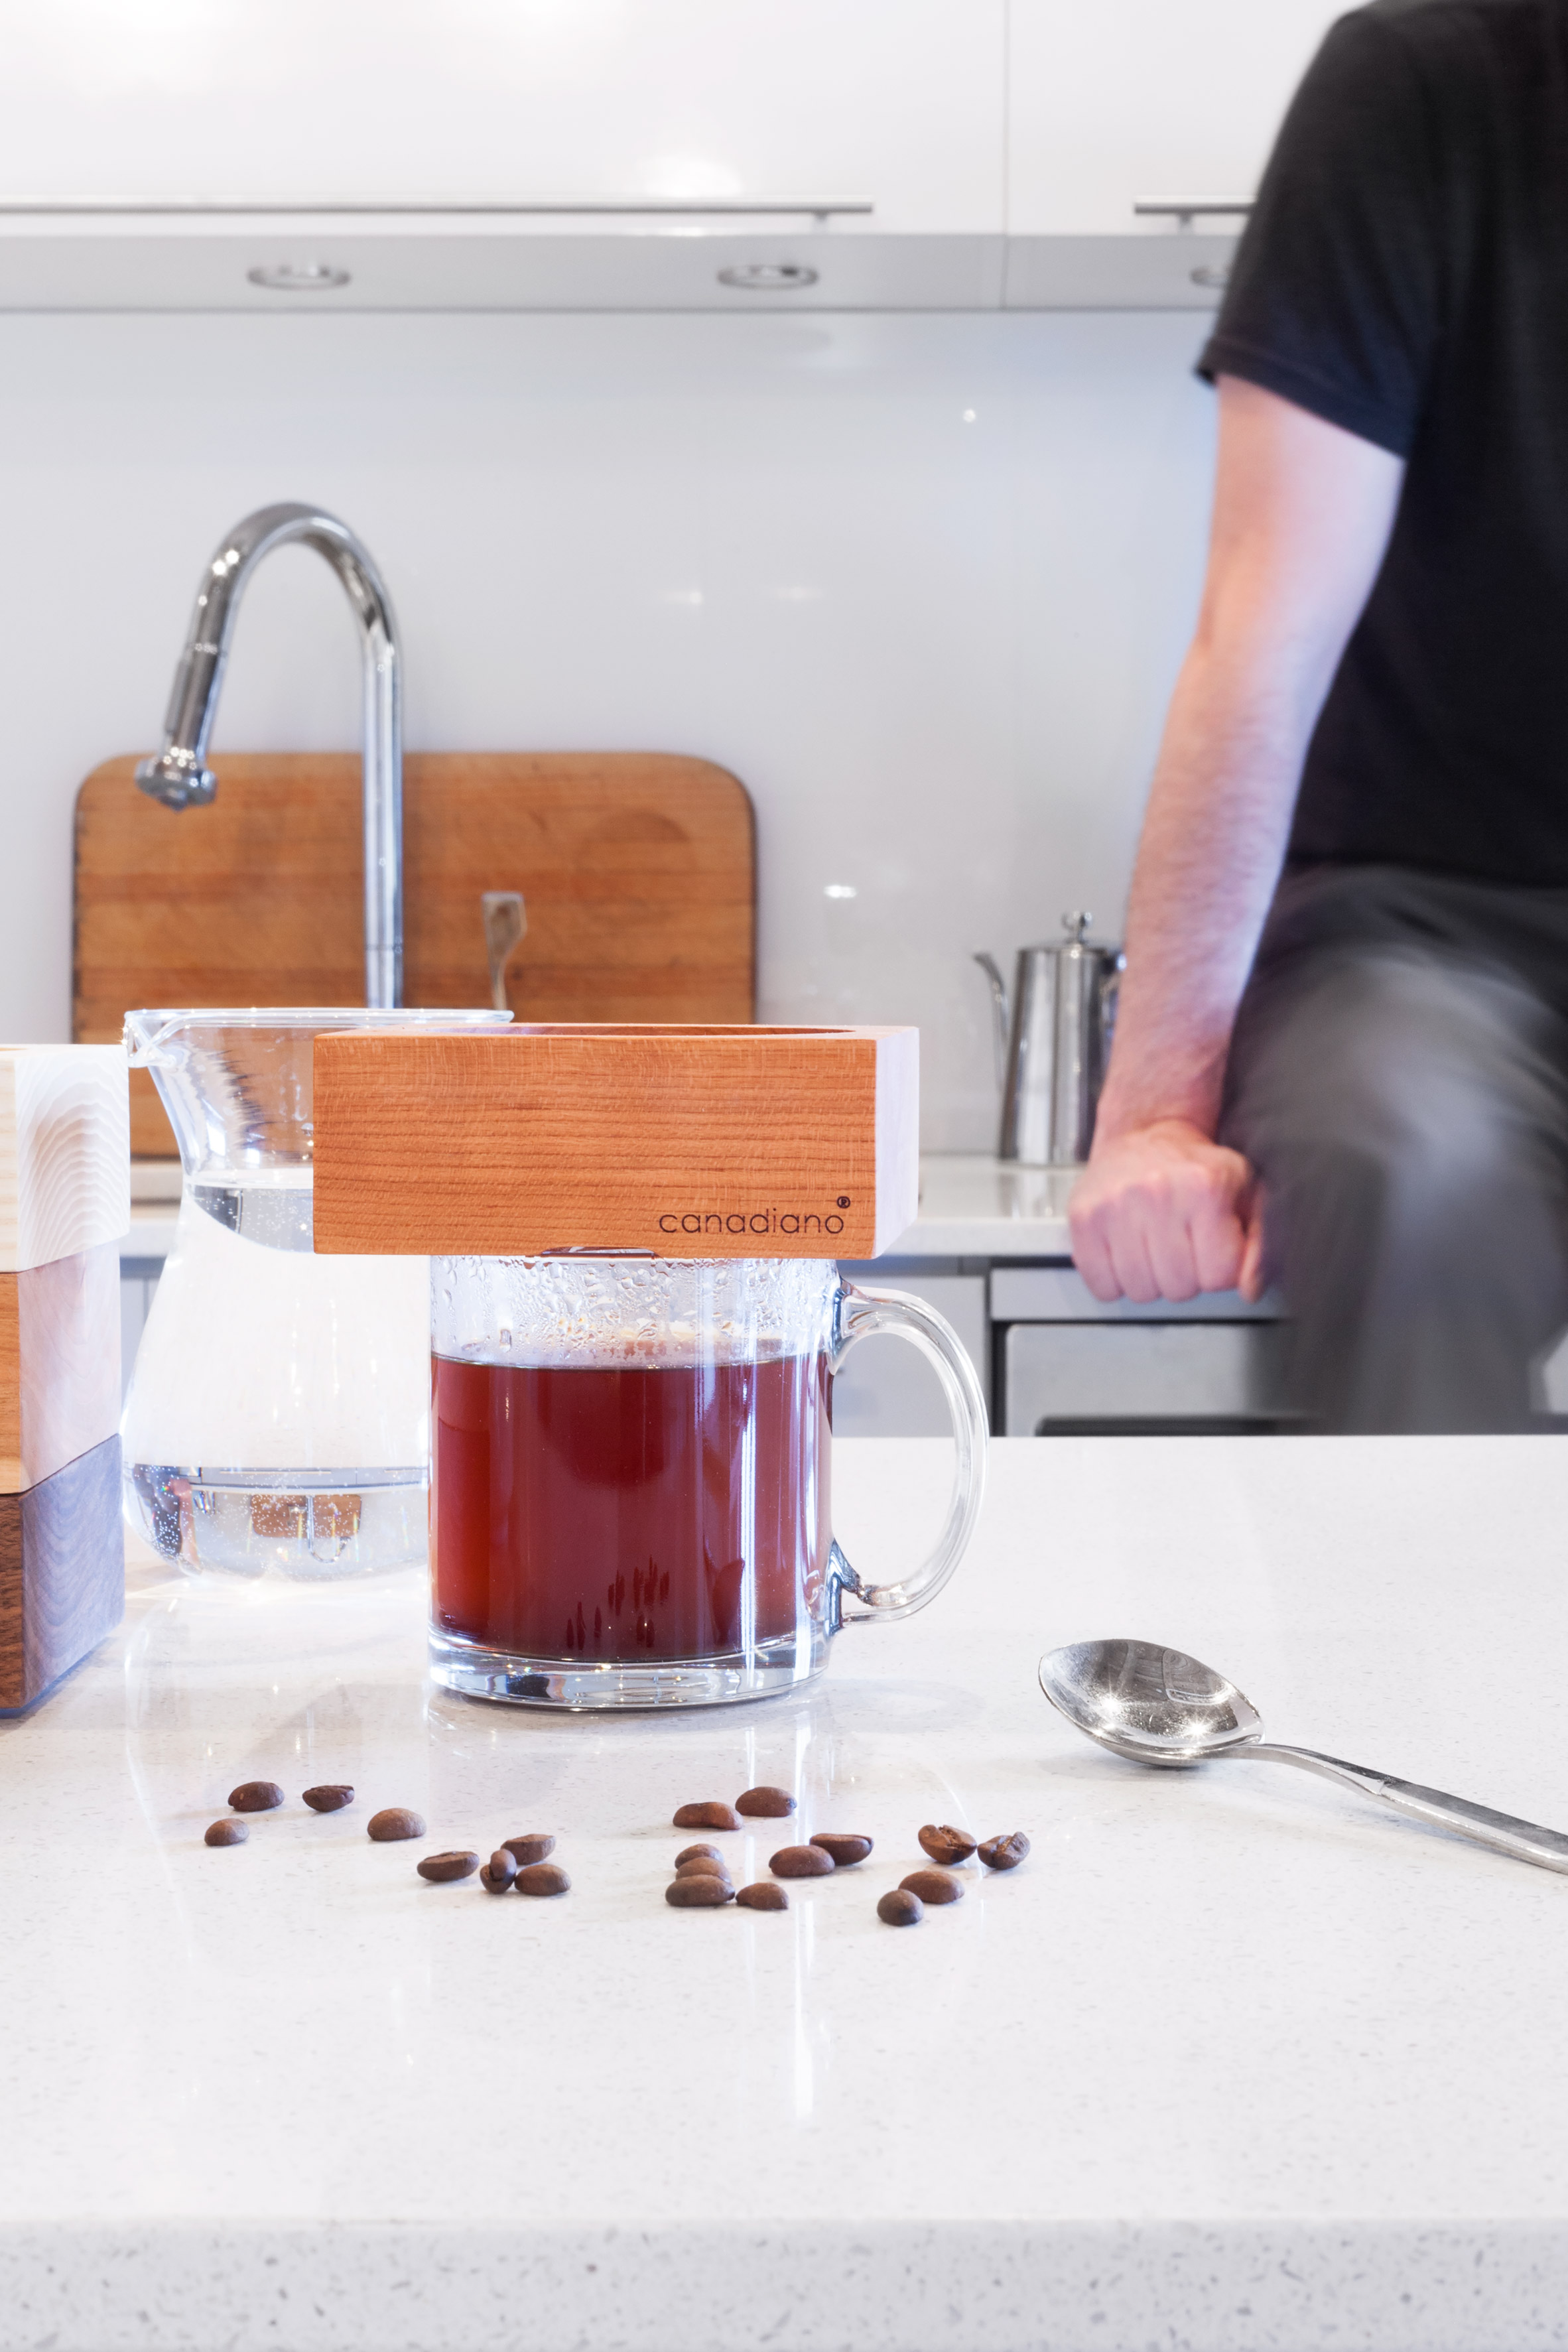 Competition: win a coffee maker crafted from a single block of wood